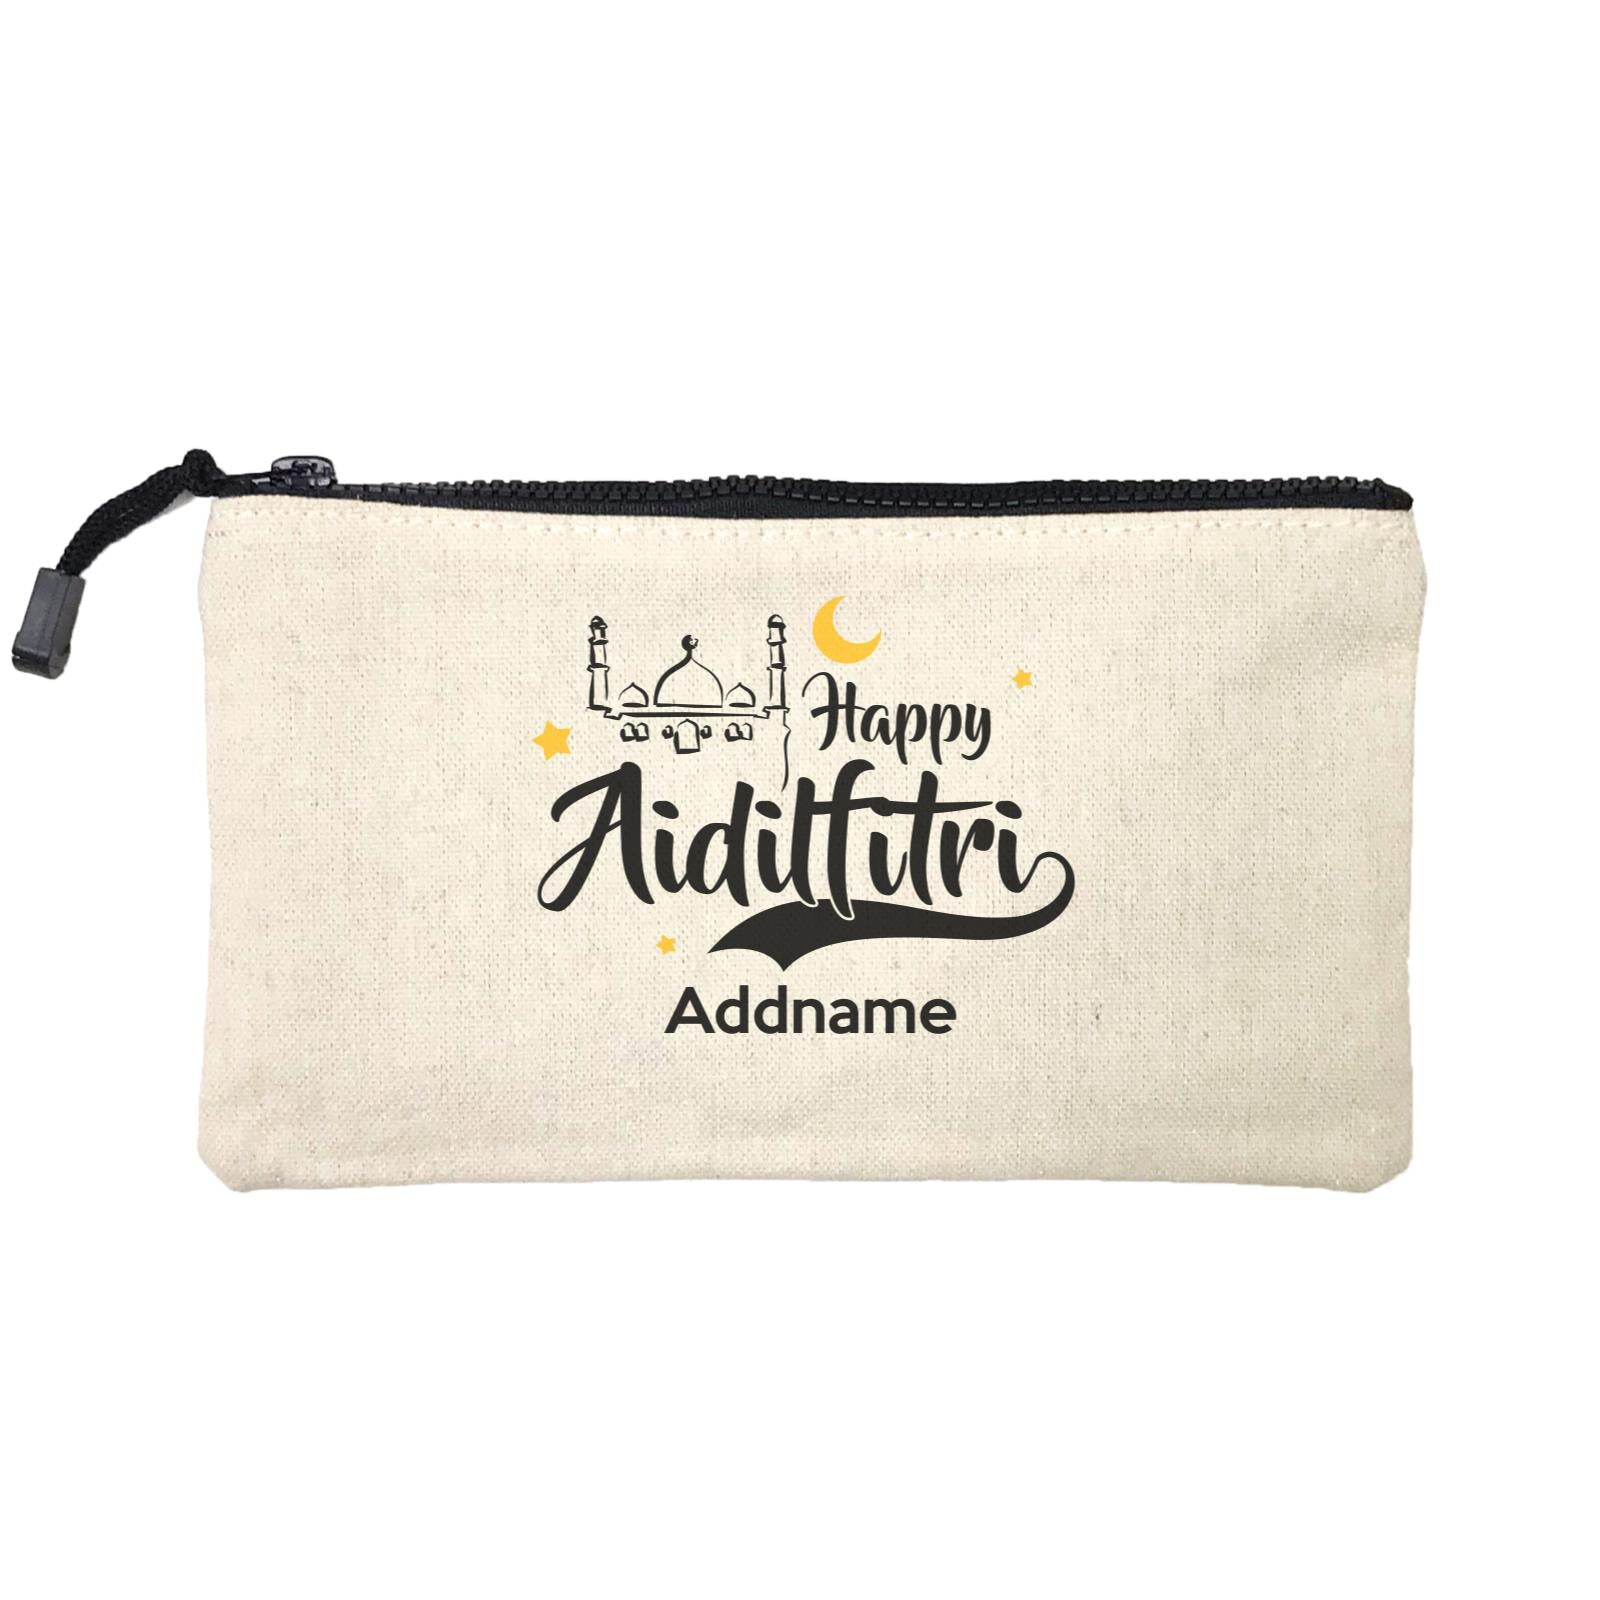 Raya Typography Doodle Mosque Happy Aidilfitri Addname Mini Accessories Stationery Pouch